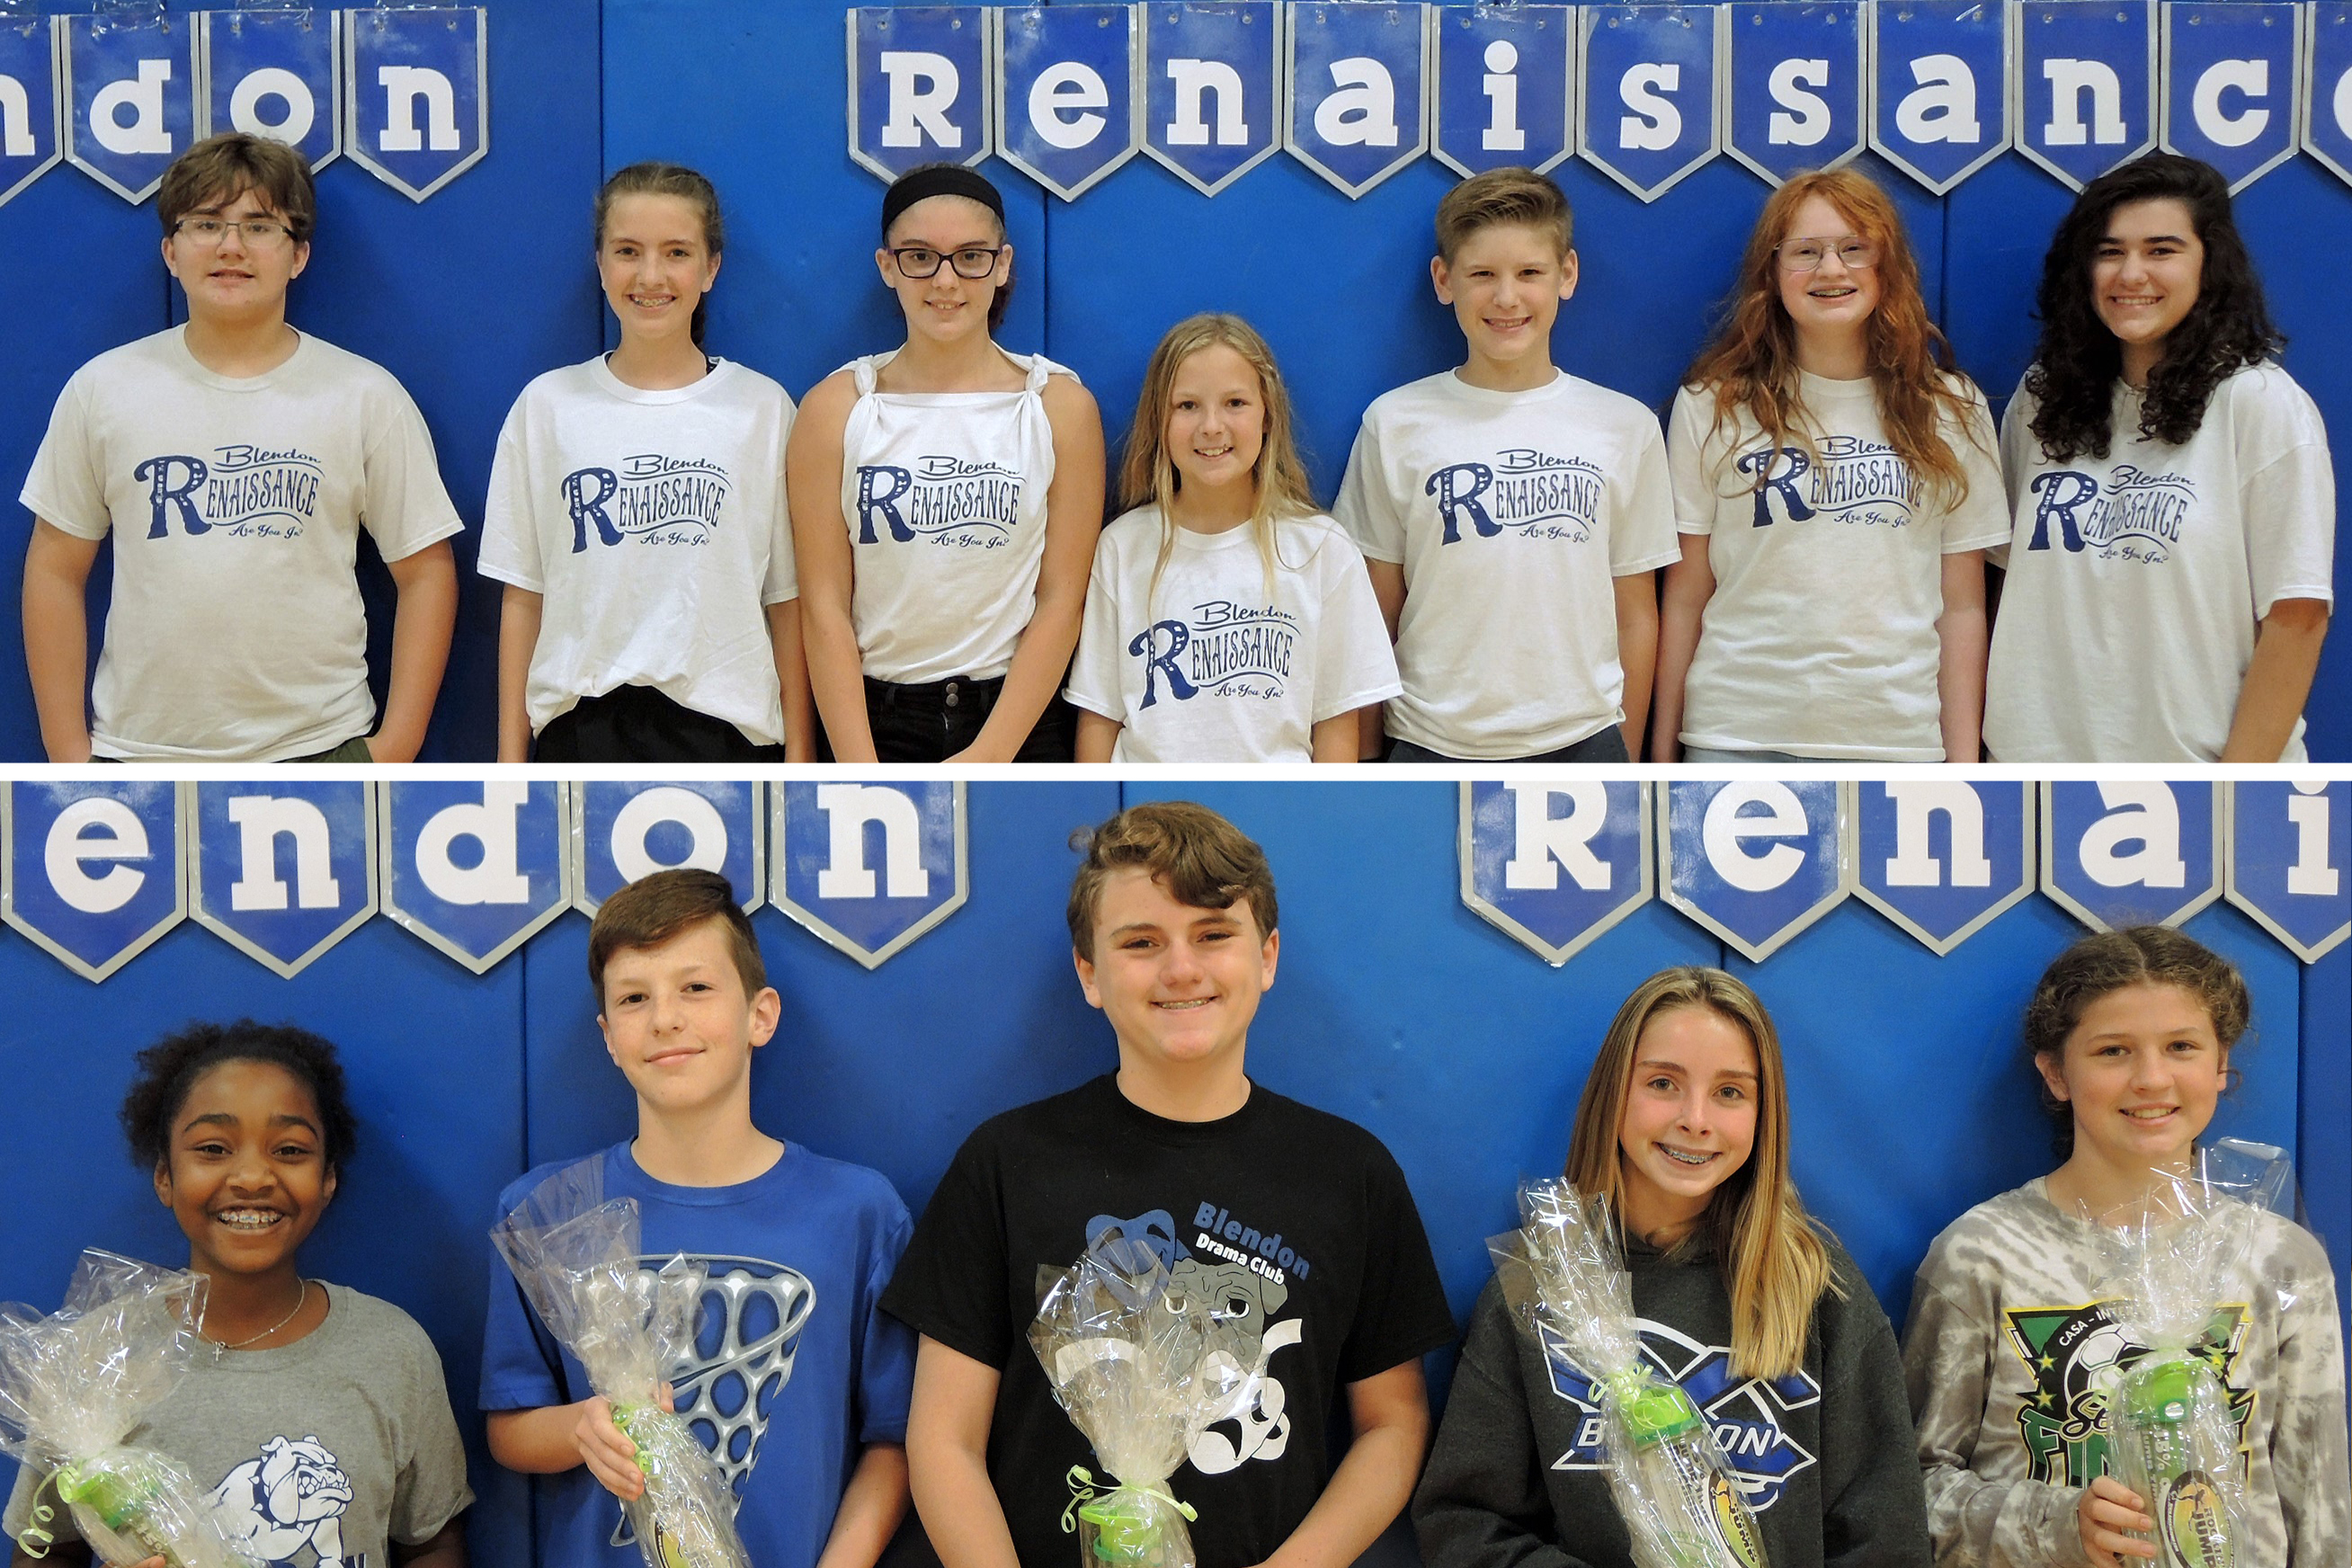 Blendon Renaissance Students